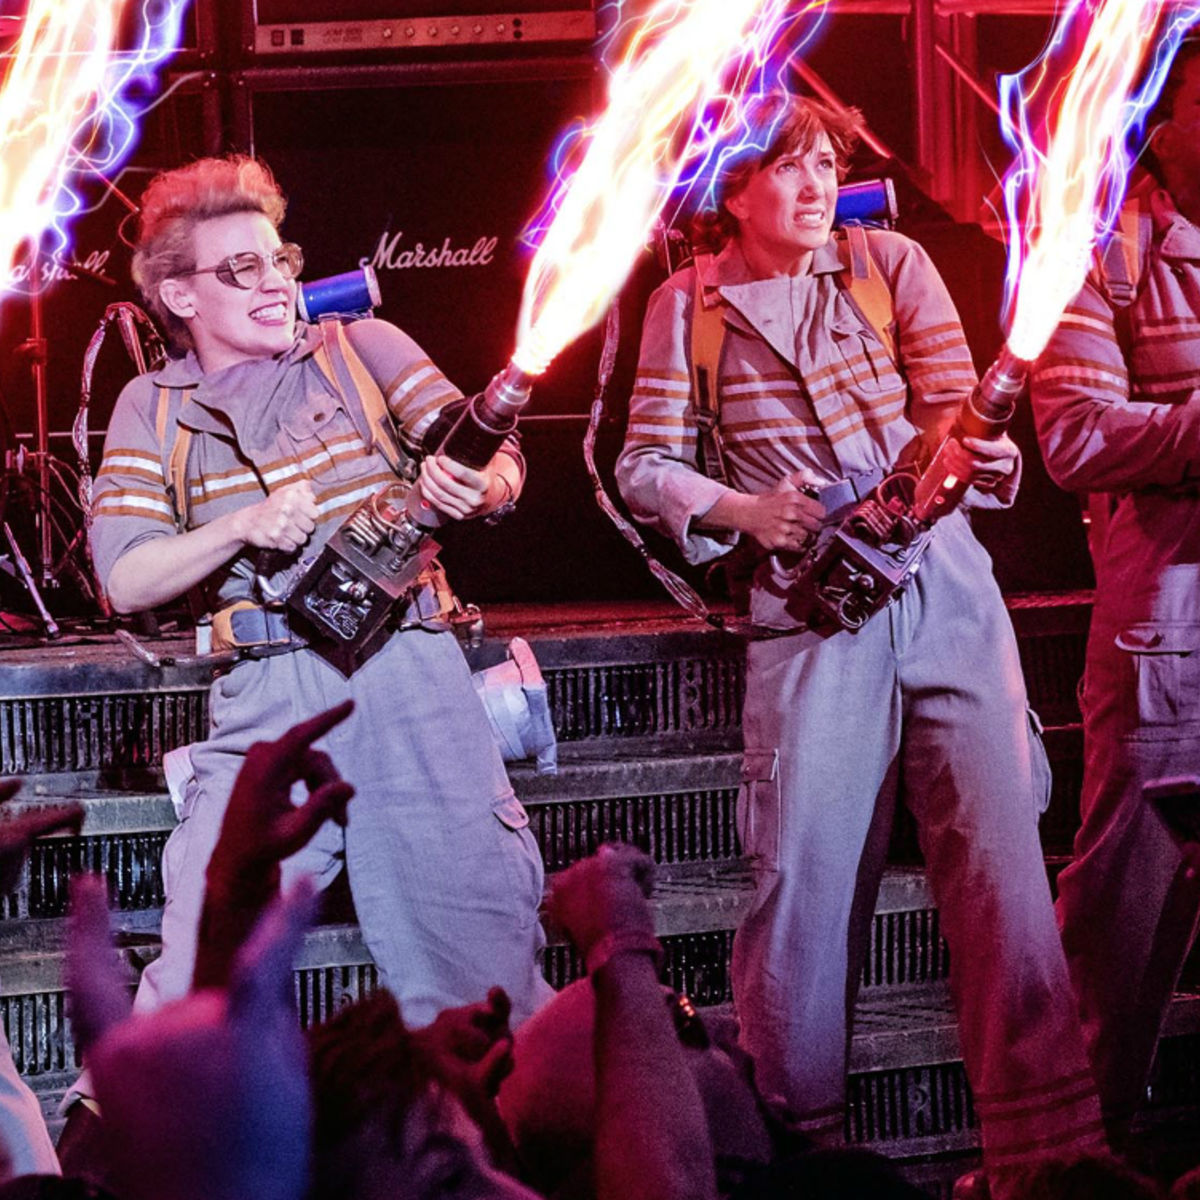 Ghostbusters-Team-proton-packs.jpg